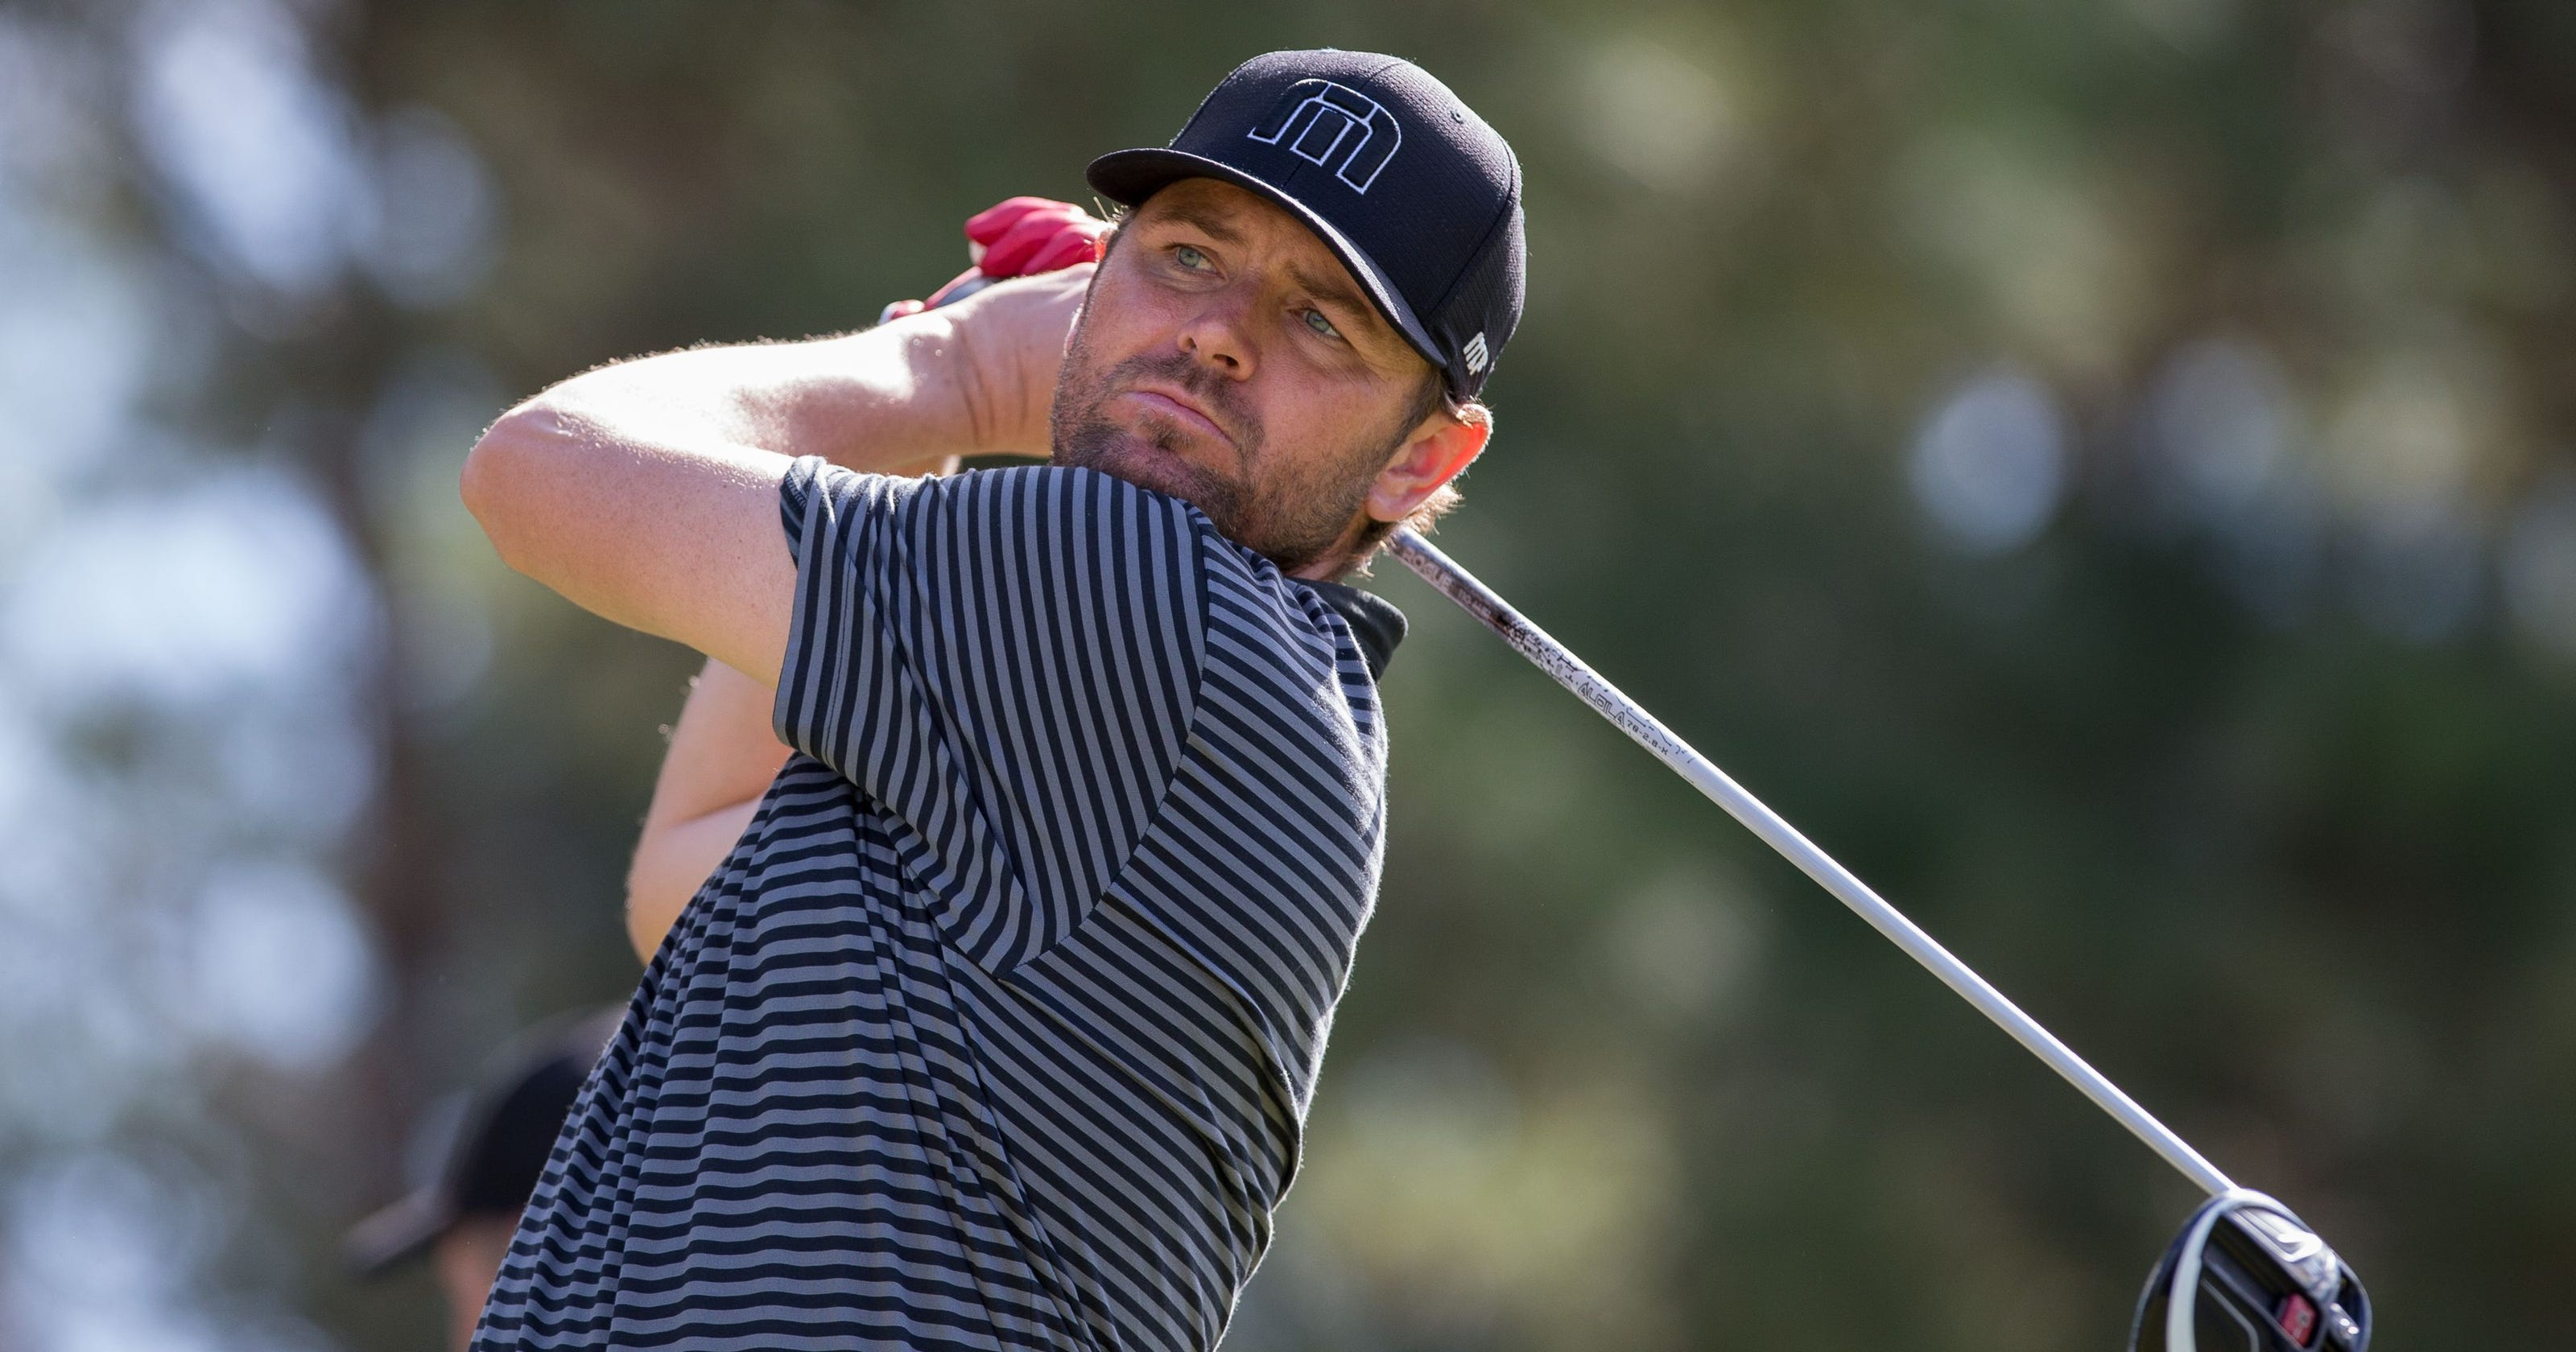 Mardy Fish Closes The Deal, Wins American Century Golf